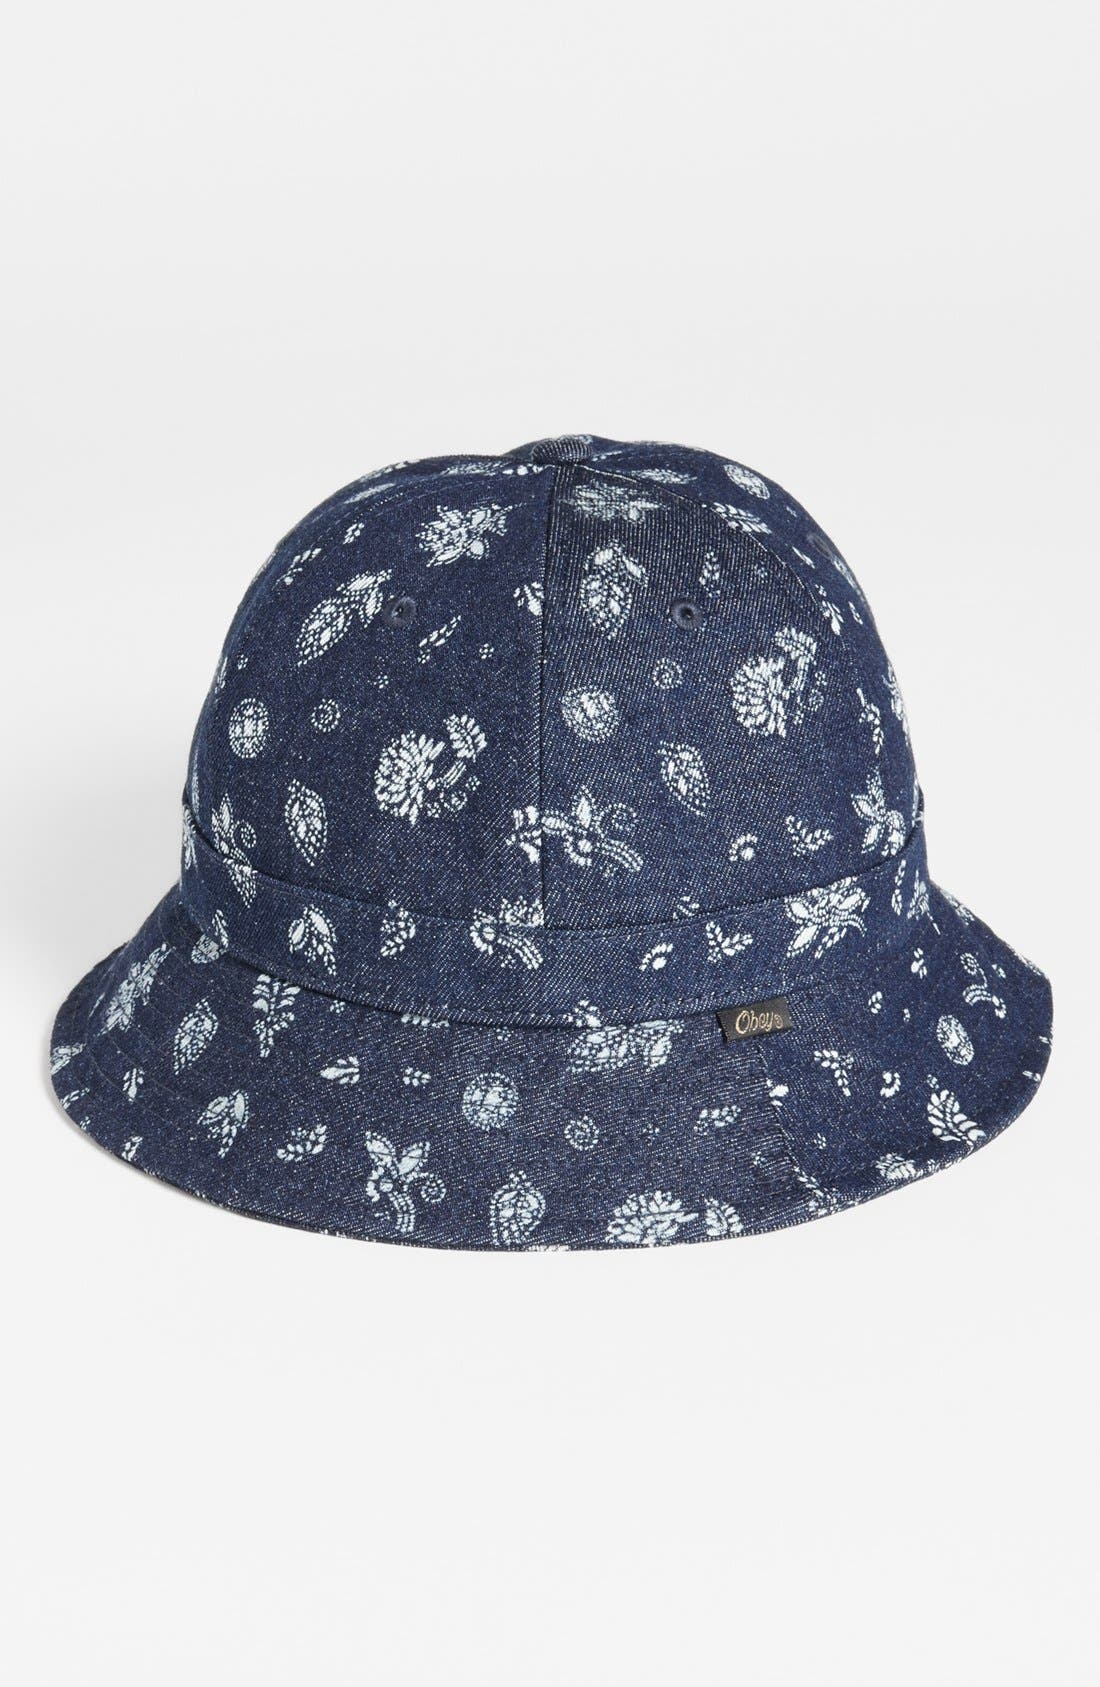 Main Image - Obey Bucket Hat